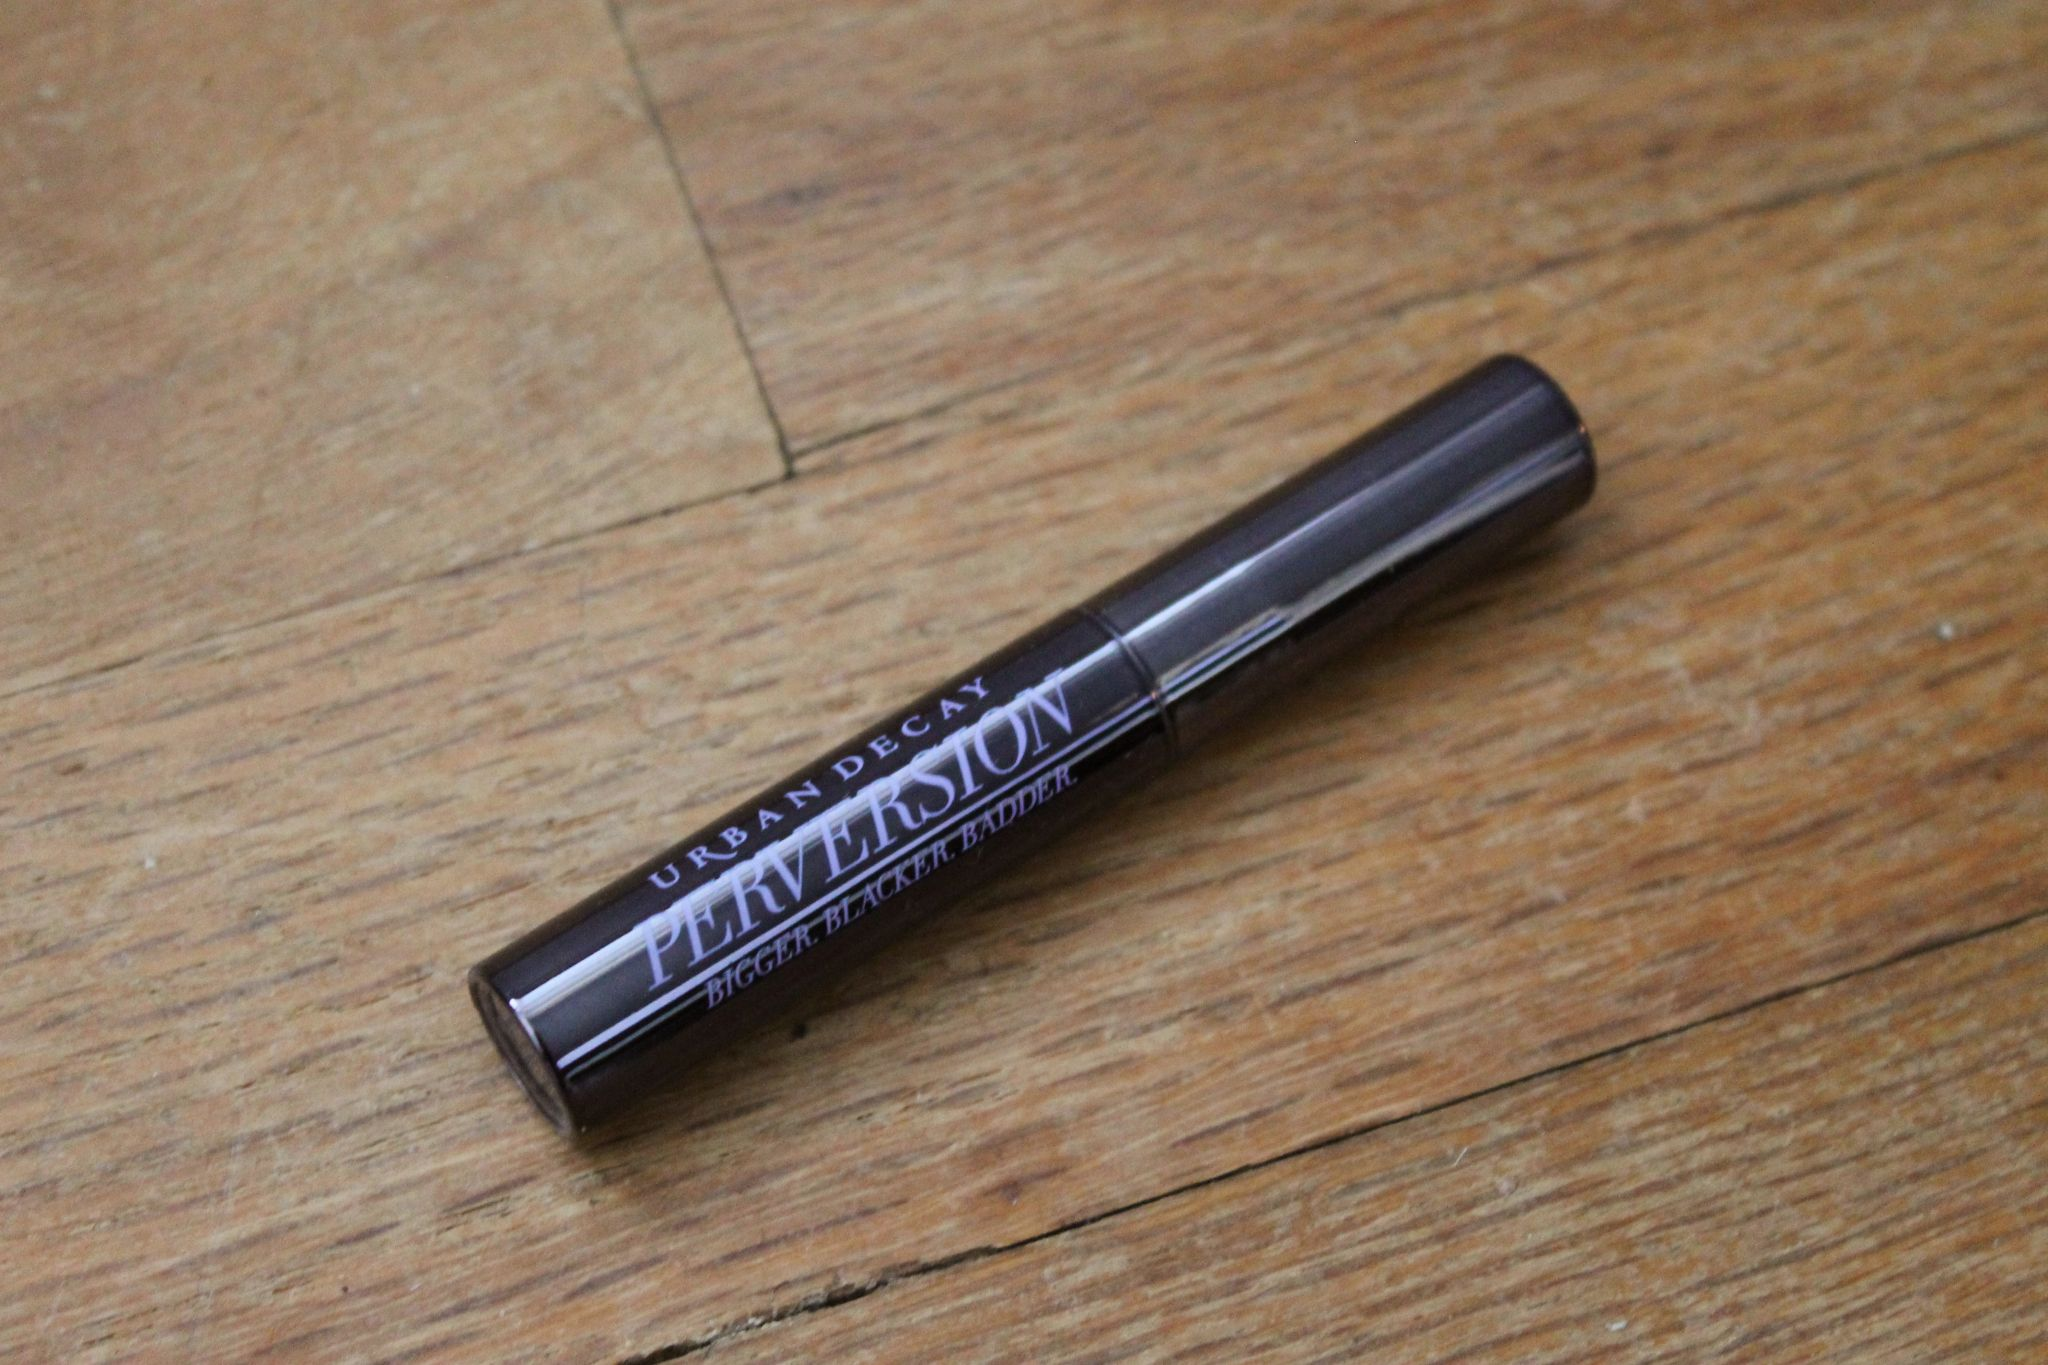 August Play by Sephora Urban Decay Perversion Mascara